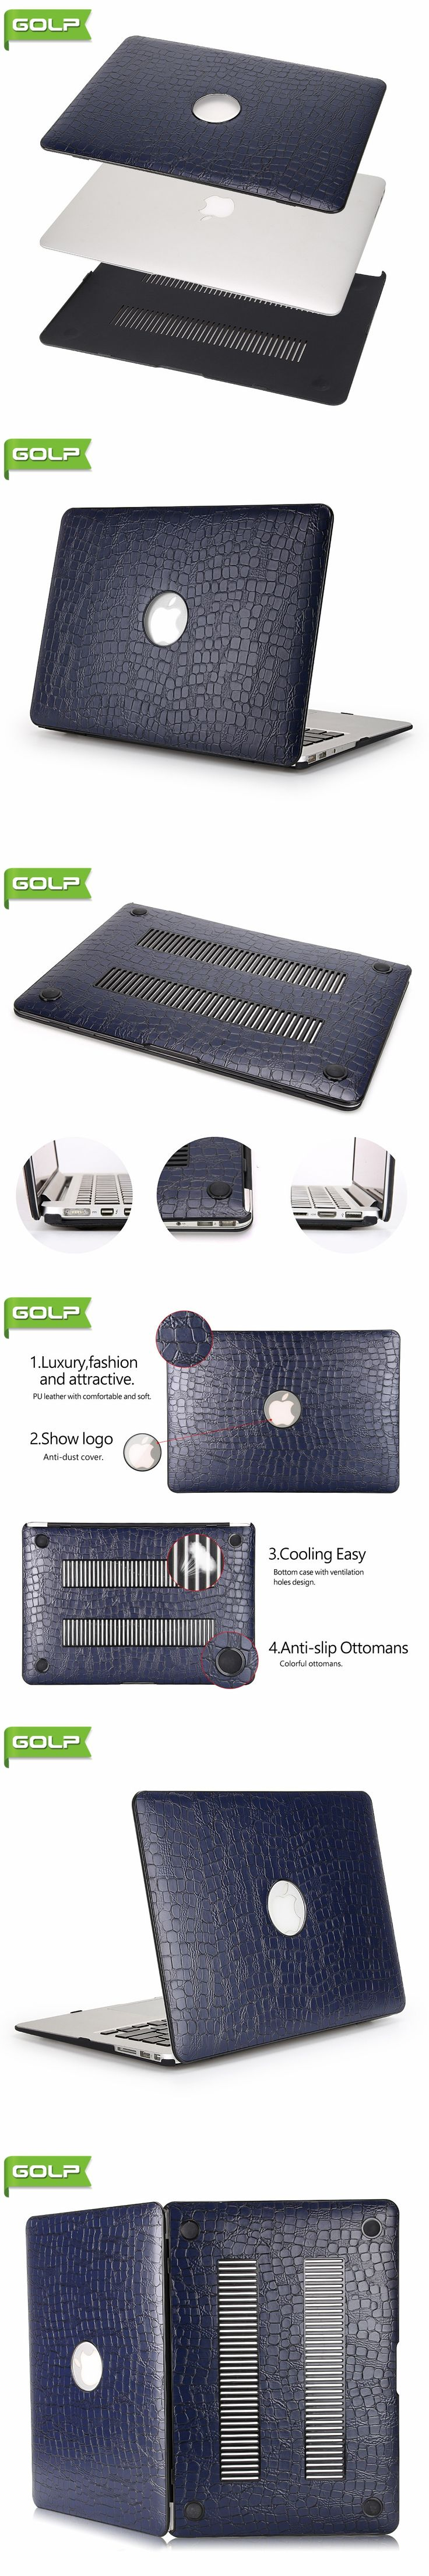 "Cover & Case for MacBook Air 13.3"",GOLP Luxuy Crocodile Grain PU Leather Cover Cooling Free PC Laptop Case for MacBook Air 13.3"""